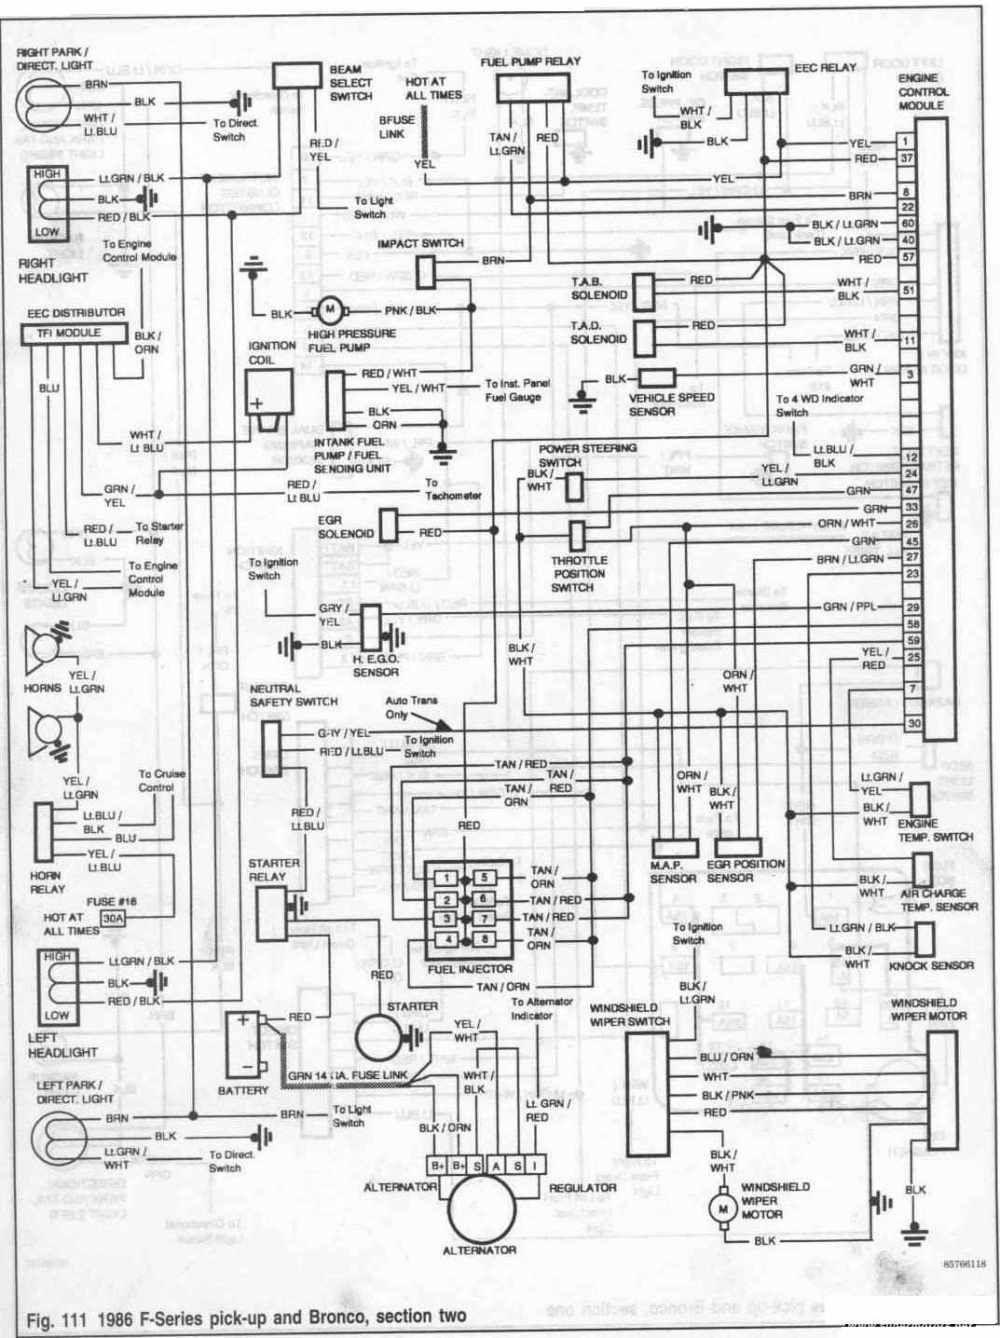 medium resolution of 86 ford bronco wiring diagram wiring diagram list 1986 ford bronco ignition wiring diagram 1986 ford bronco wiring diagram